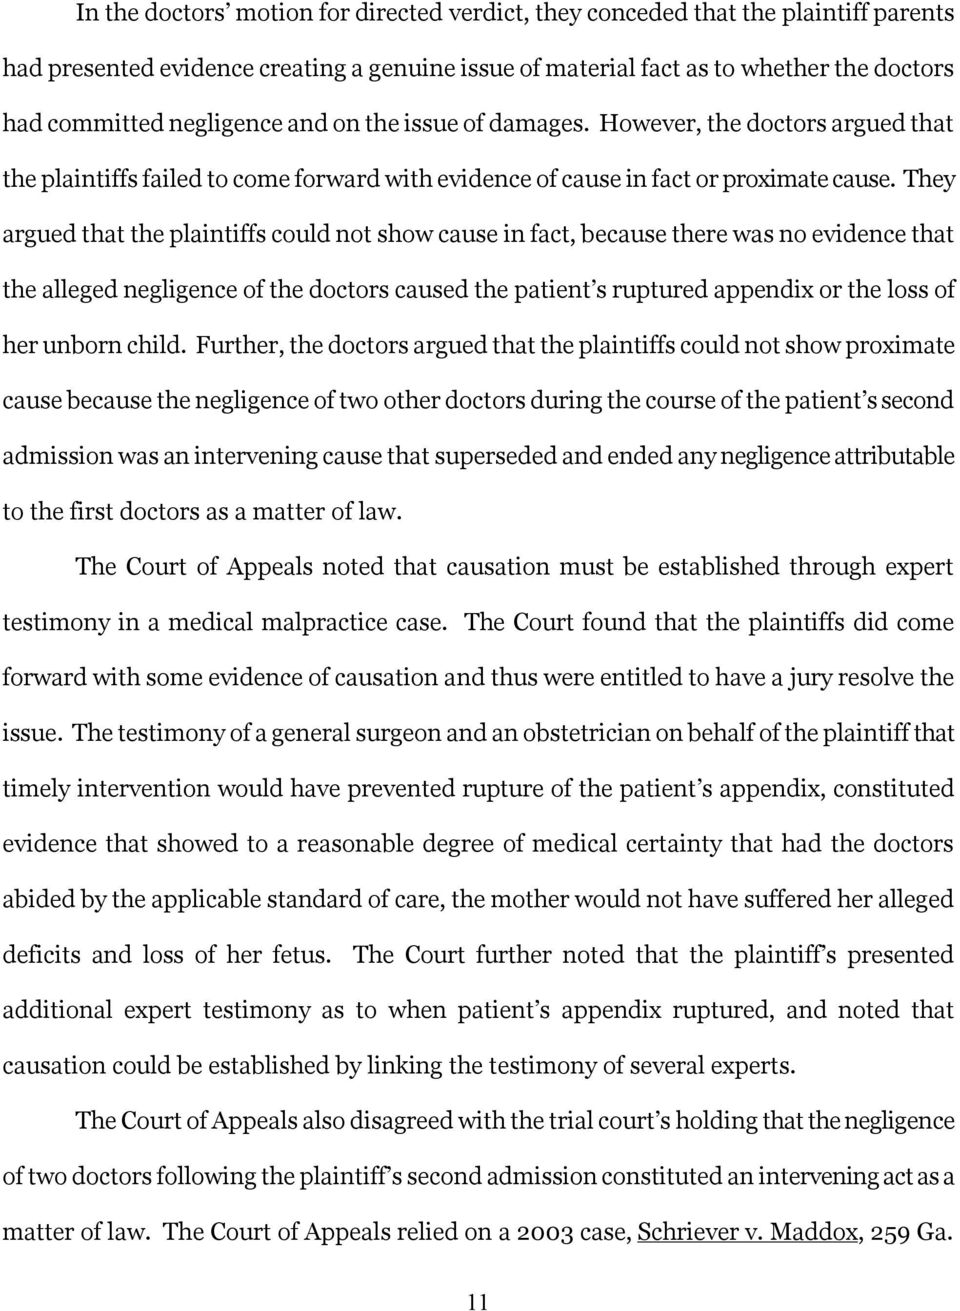 They argued that the plaintiffs could not show cause in fact, because there was no evidence that the alleged negligence of the doctors caused the patient s ruptured appendix or the loss of her unborn